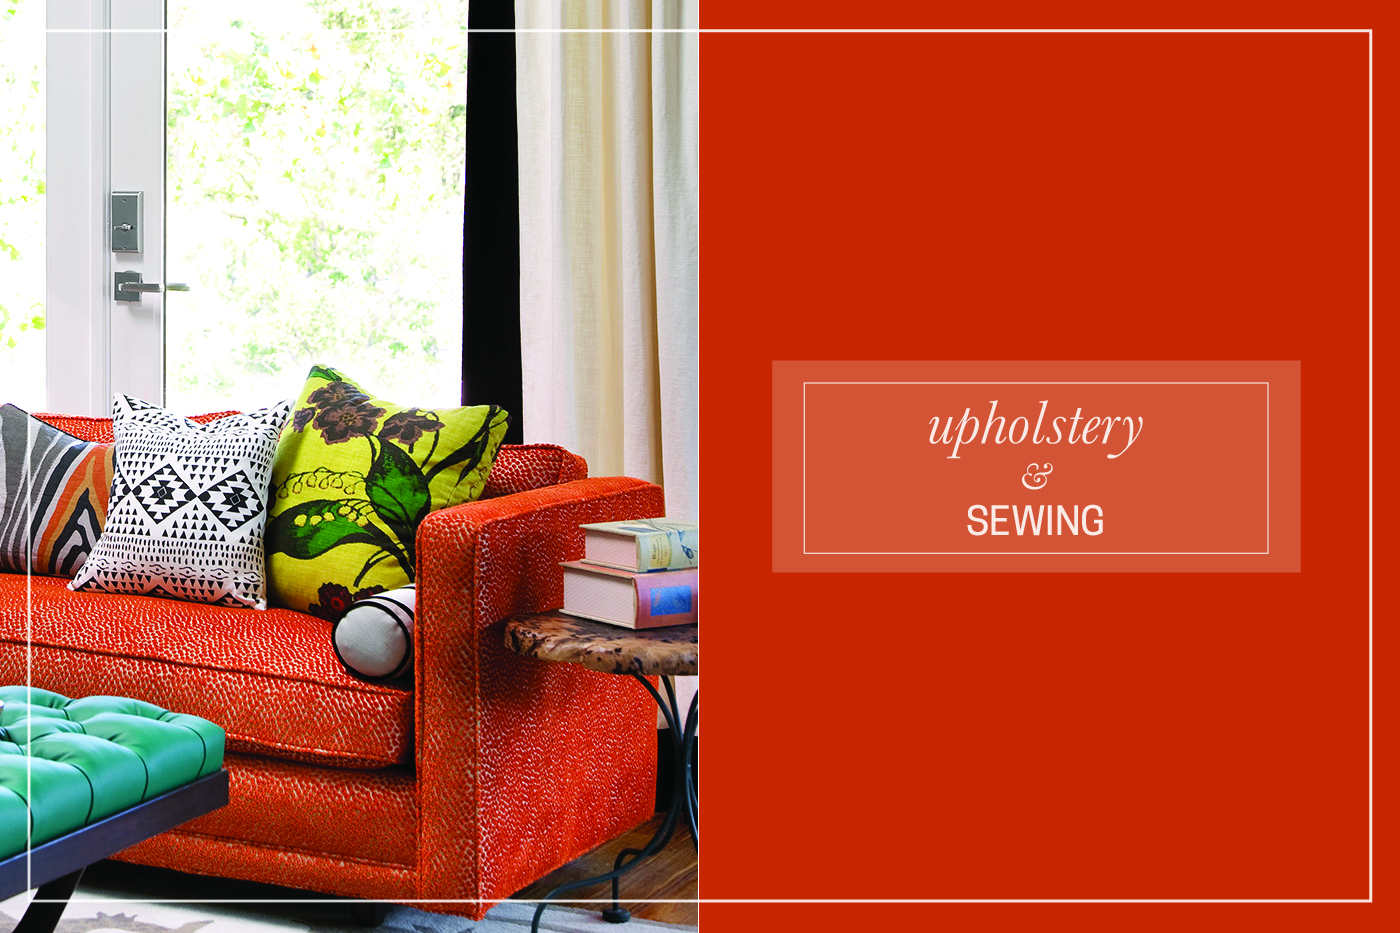 Upholstery & Sewing